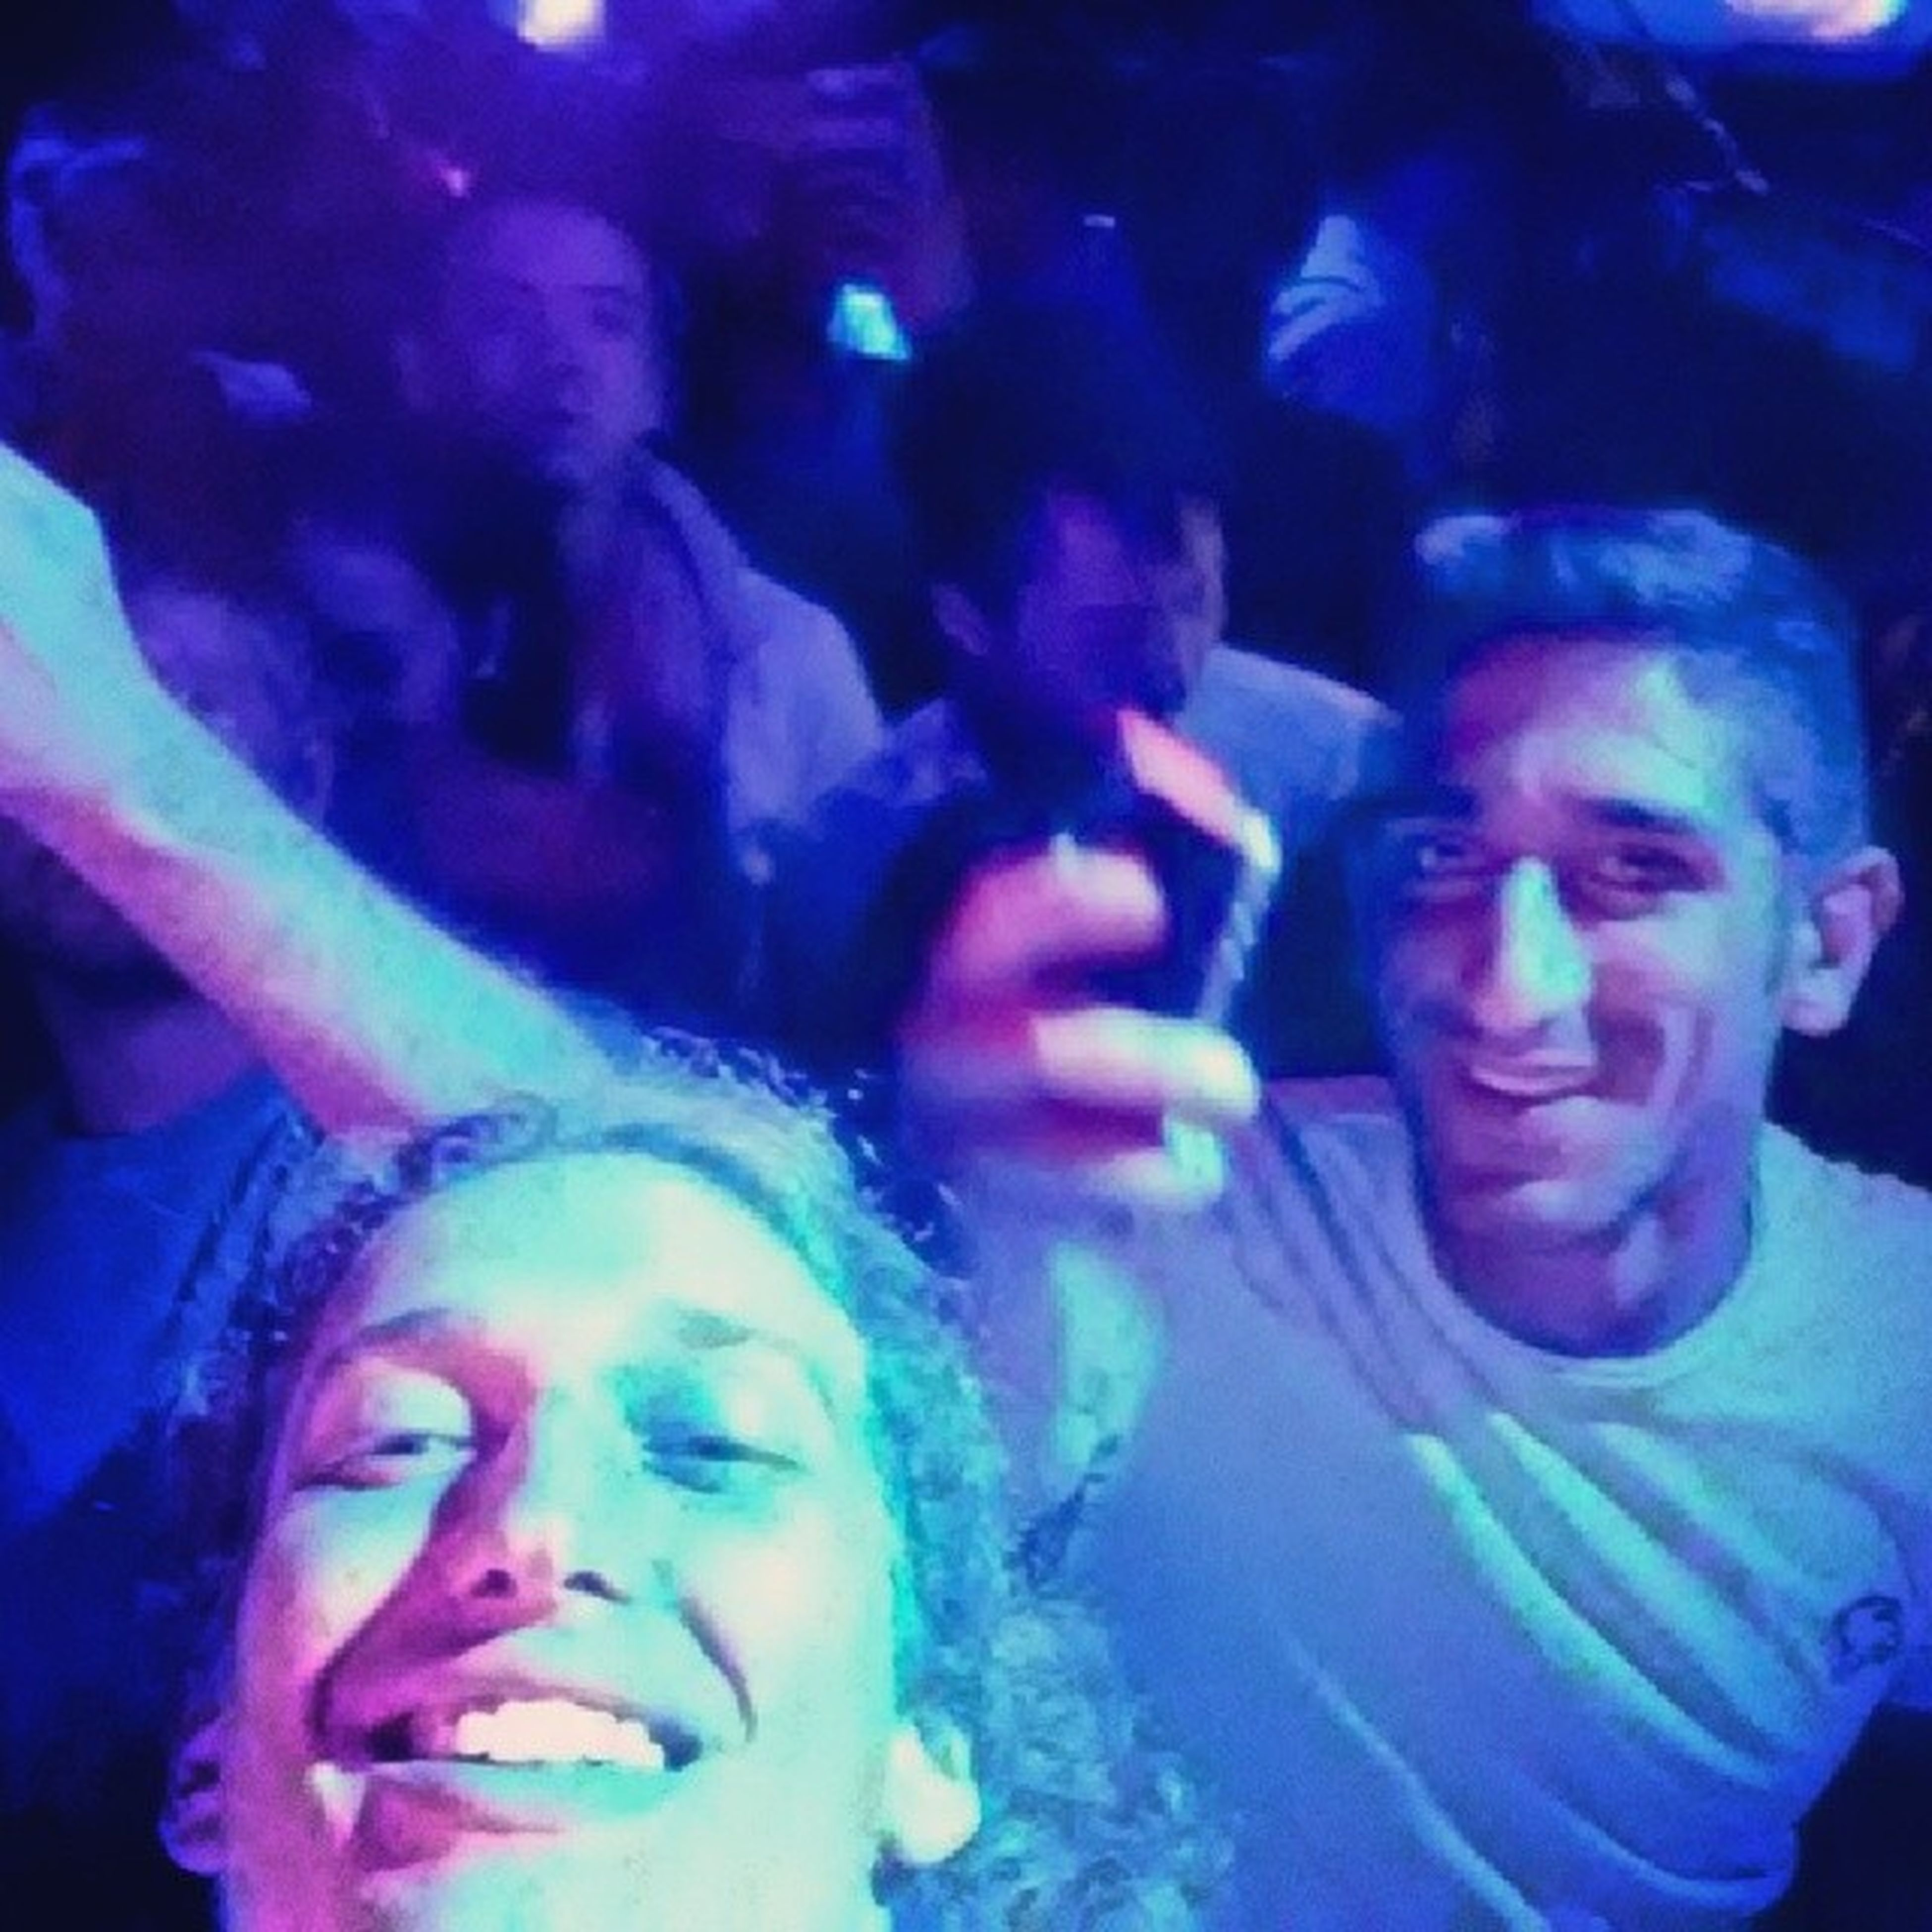 TravelStories - First SoBe club experience. This guy wound up becoming my roommate as well lol HostelLife ClubStory